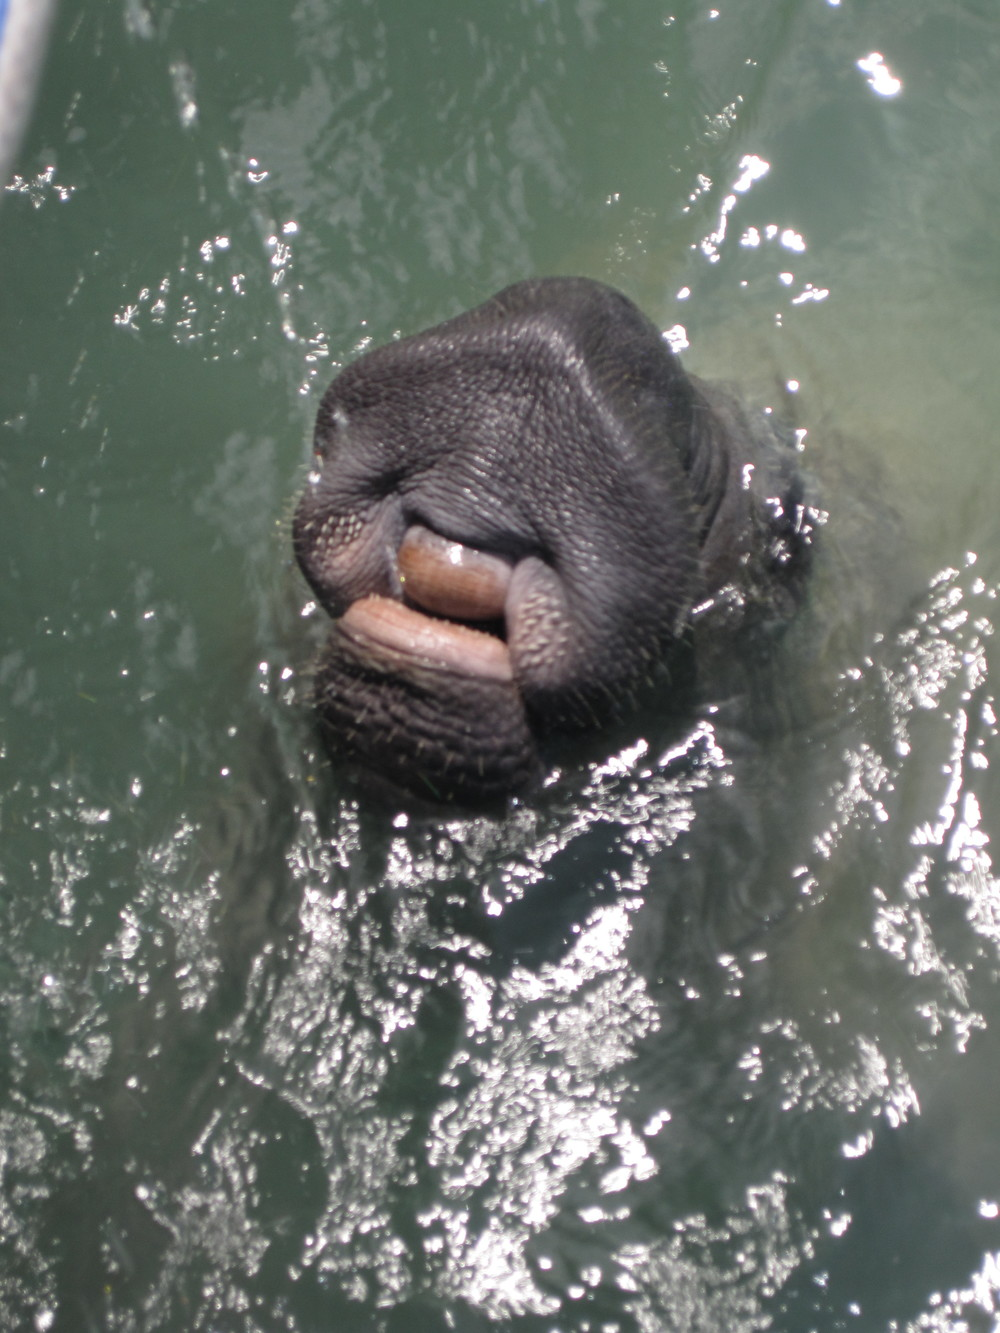 Manatee asking for fresh water from the dock hose